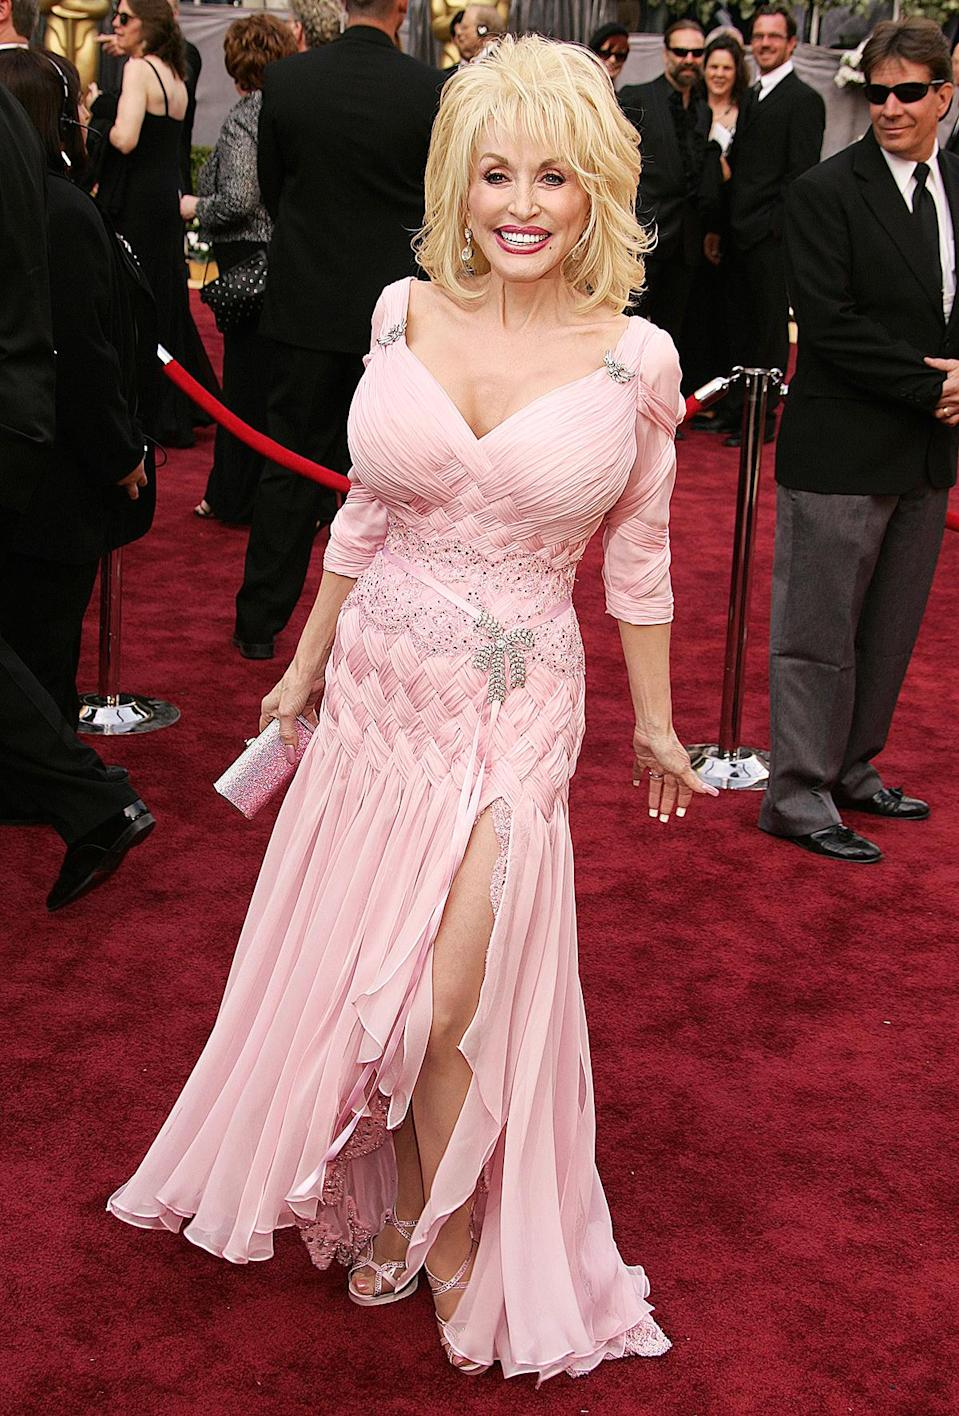 """<p>Ever since breaking through in 1967, Parton knows people may be looking — and judging — what she's wearing. But she's been the first to joke about her appearance. """"It costs a lot of money to look this cheap!"""" is one of her favorite quips. We'd argue she looked far from cheap at the 2006 Oscars, in a ruched gown with slit at the skirt. </p>"""